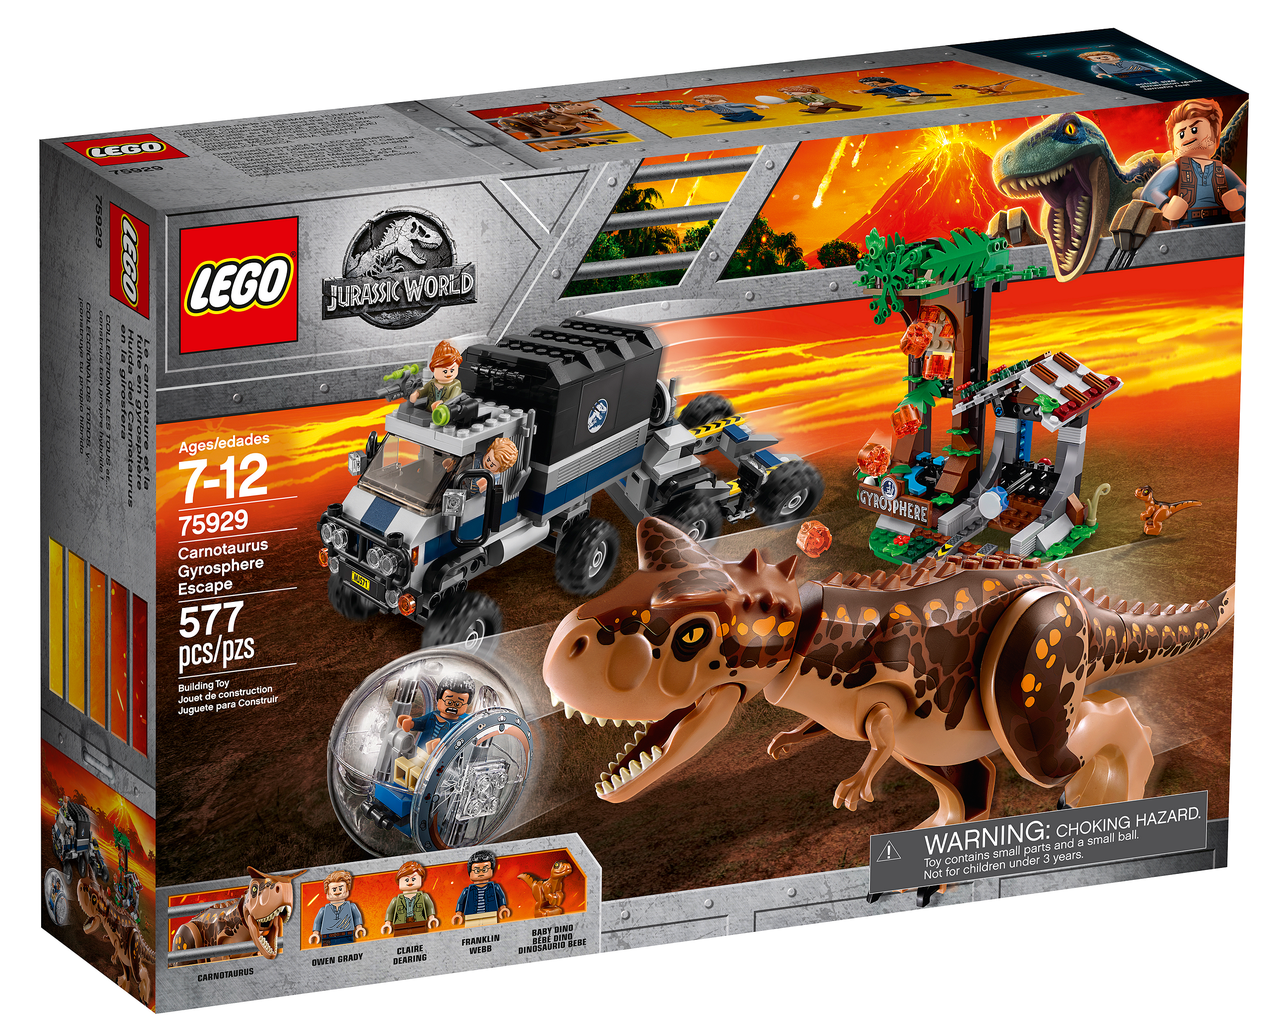 Lego Jurassic World Побег в гиросфере от Карнотавра 75929